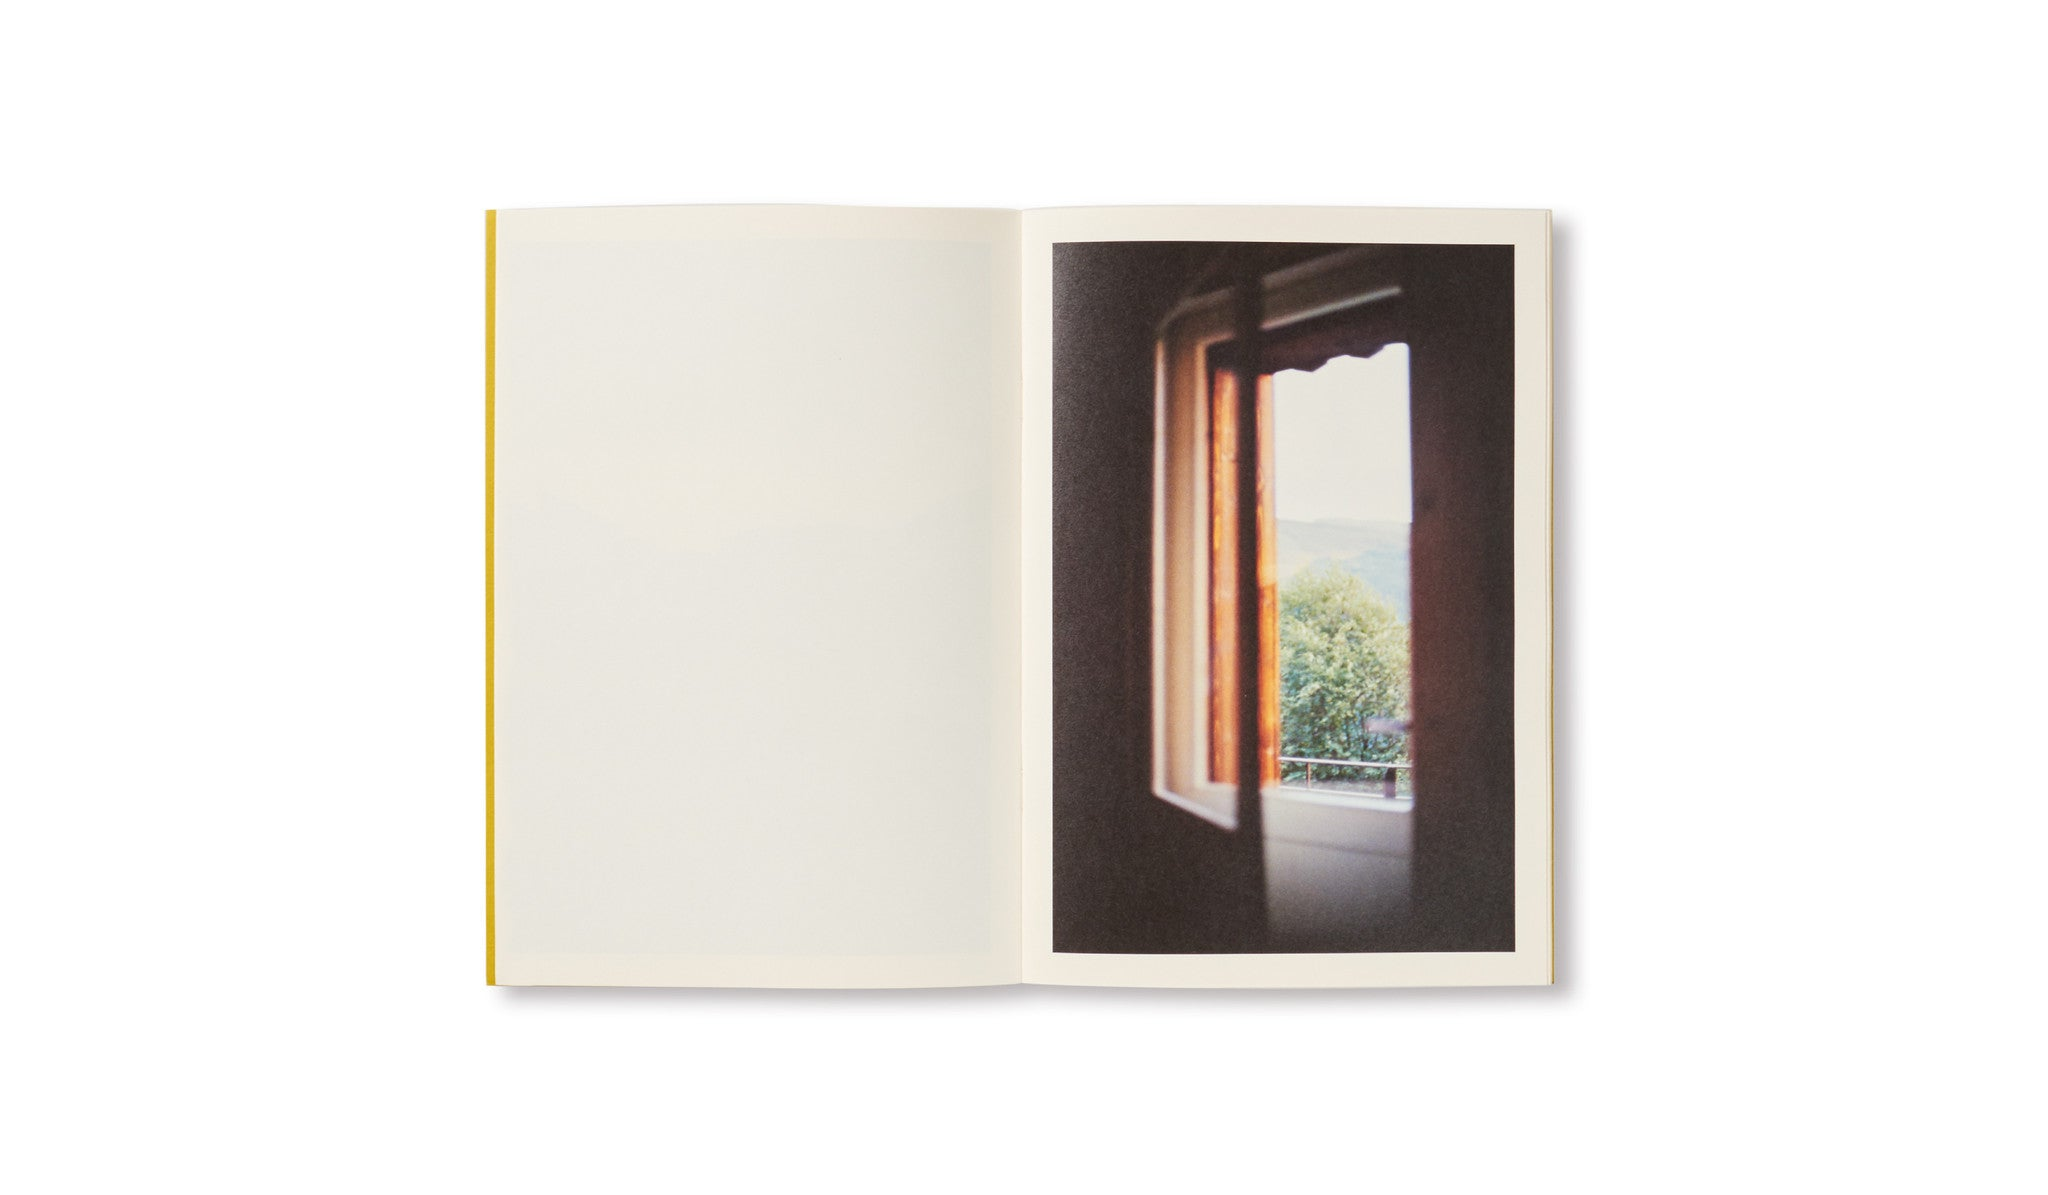 DISTANCE (PICTURES FOR AN UNTOLD STORY) by Ola Rindal [SPECIAL EDITION - A]